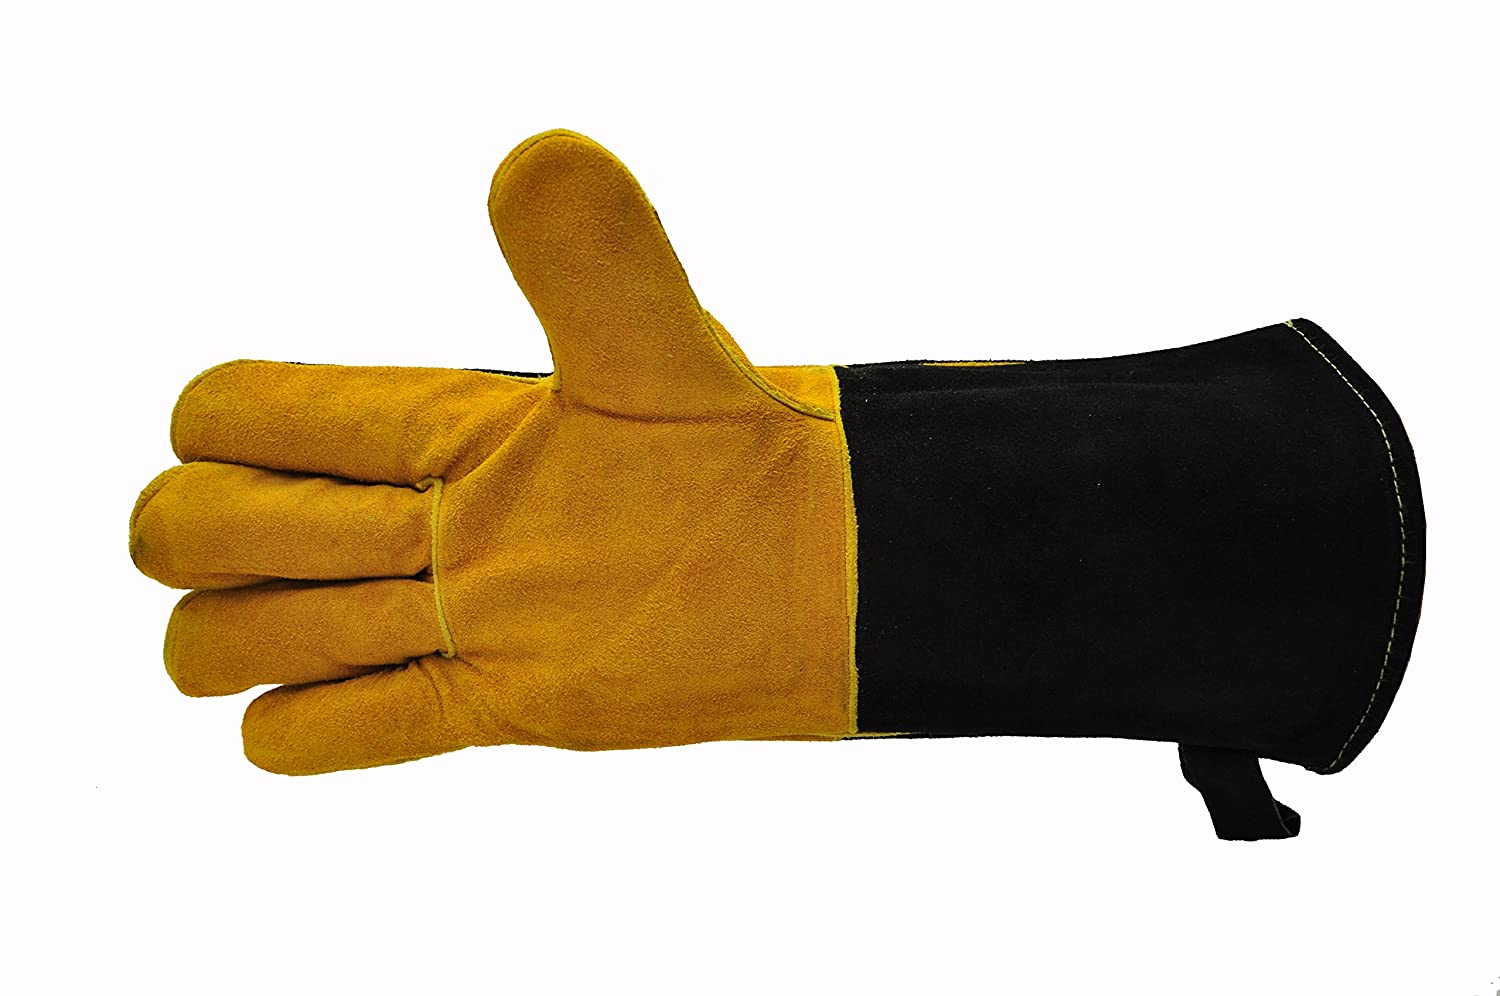 Leather work gloves ireland - Grillpro Black Leather Bbq Gloves Amazon Com G F 8113suedeleather Premium Suede Leather Gloves Bbq Gloves